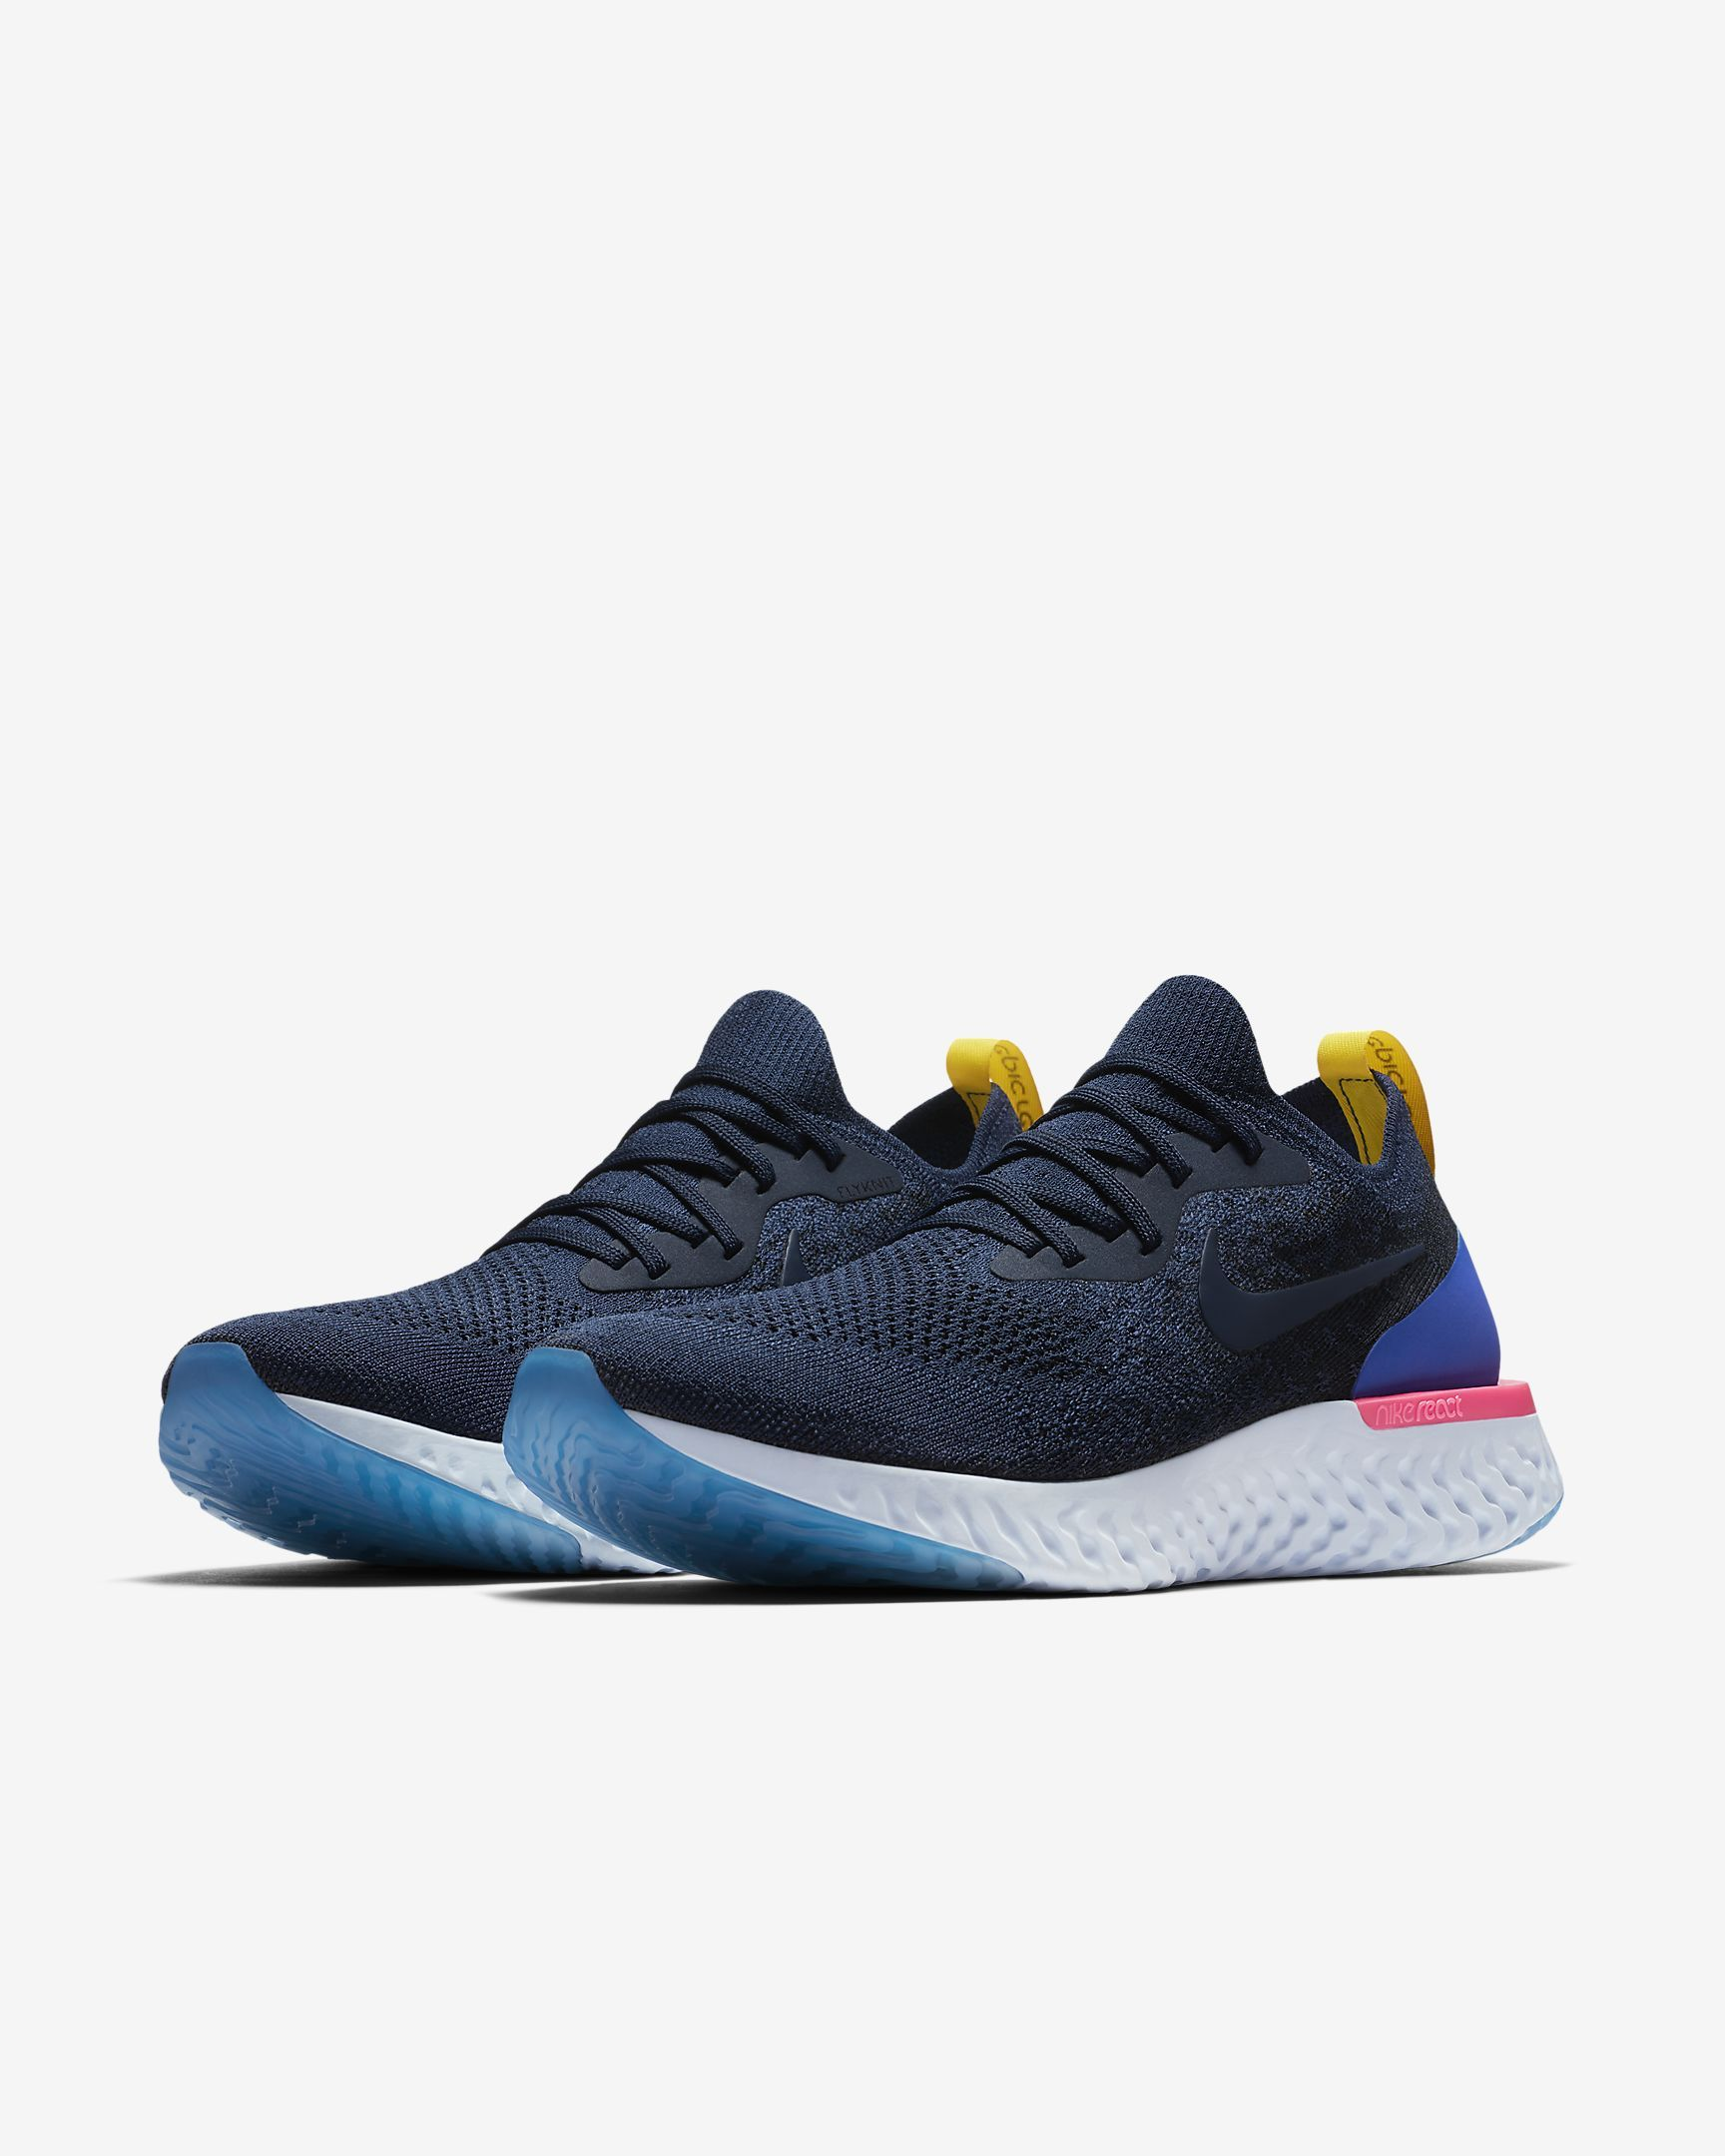 Men's Nike Epic React Flyknit Running Shoes Blue Glow/Photo